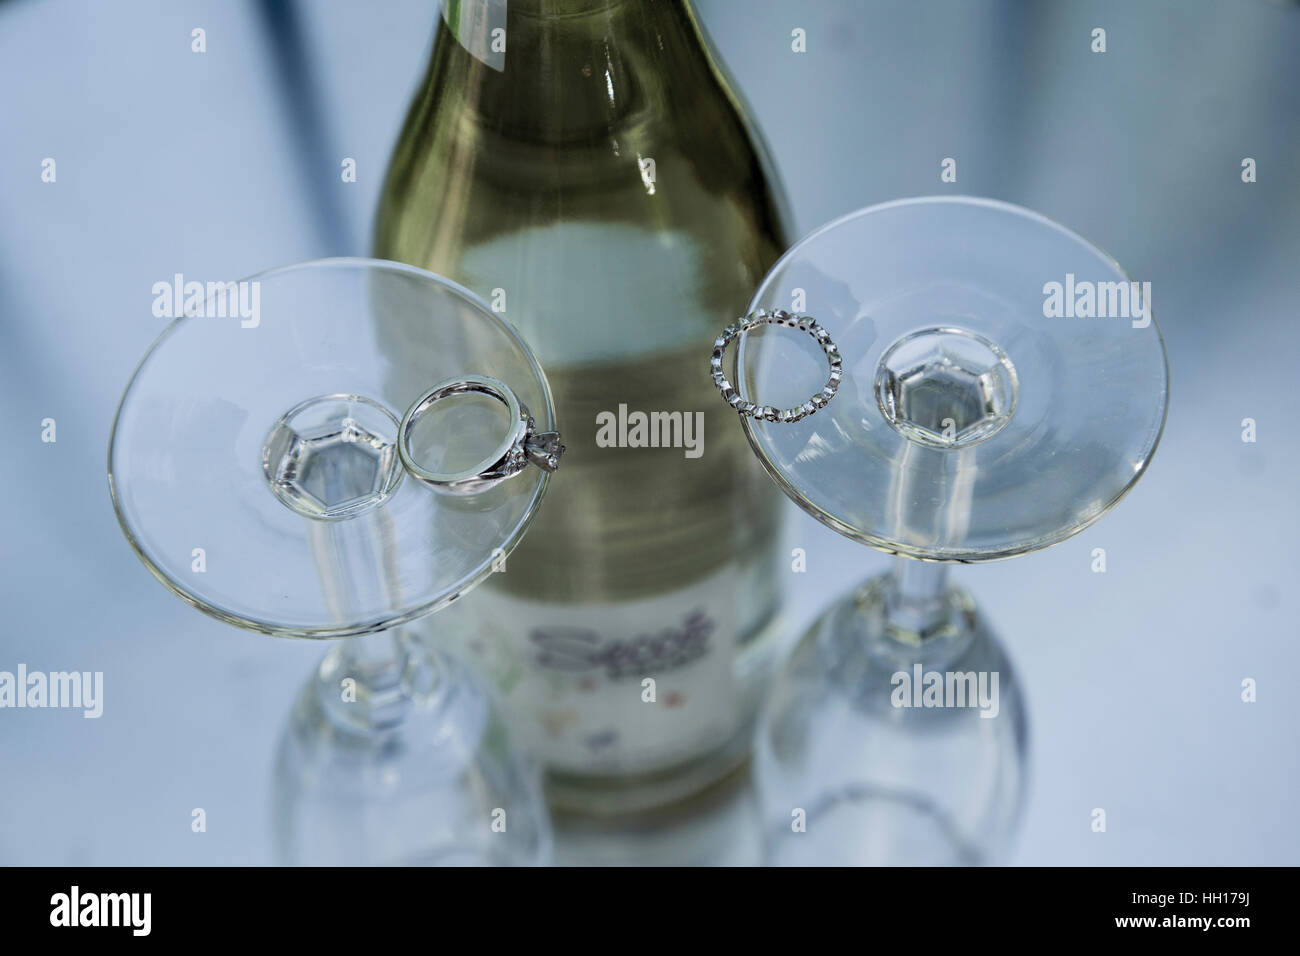 Champaign glasses with wedding rings - Stock Image